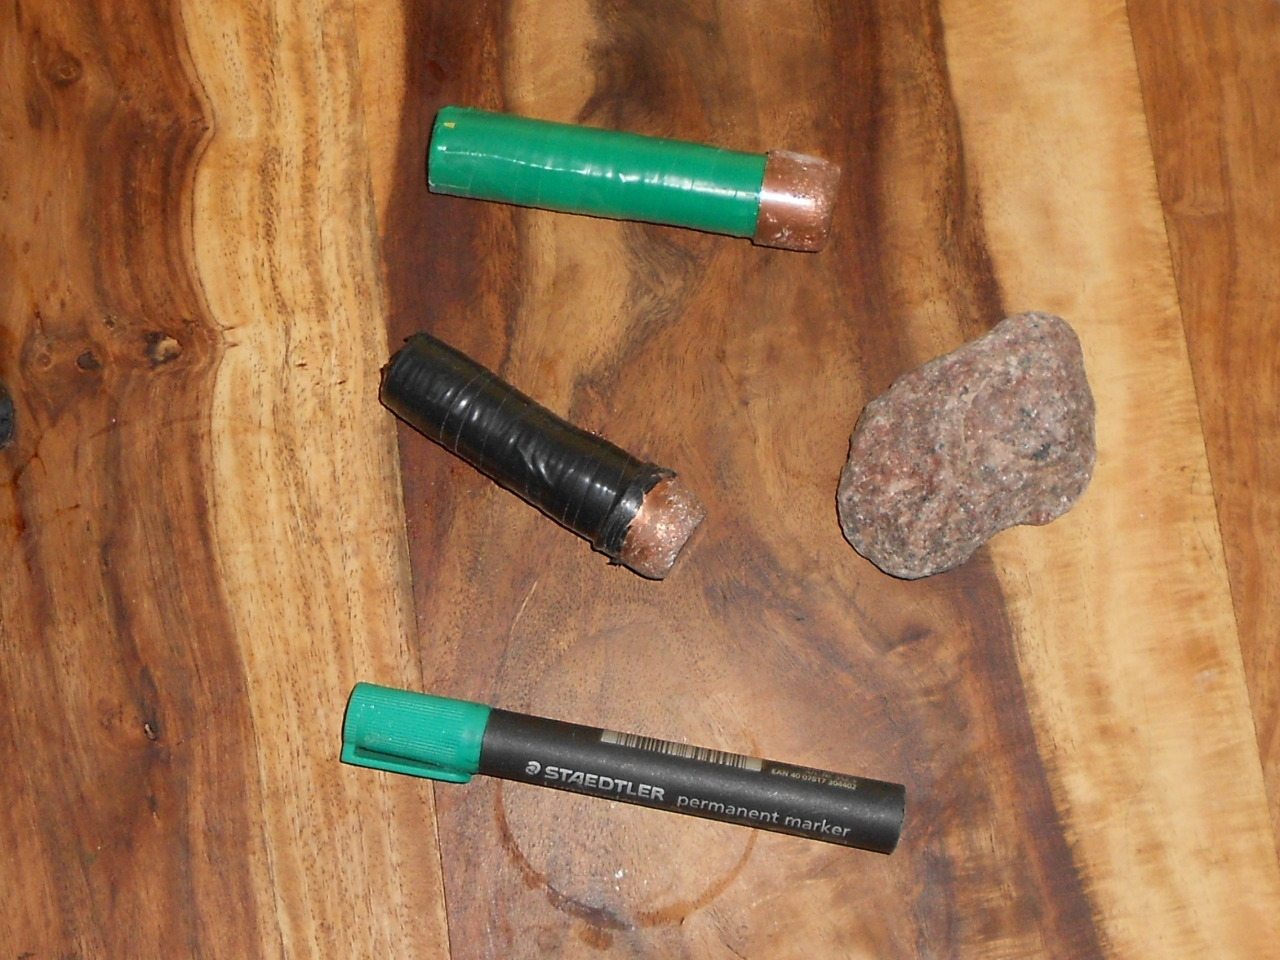 A Cheap and Simple DIY Copper Knapping Hammer Tumblr_moydgy5xsP1sxumsvo1_1280